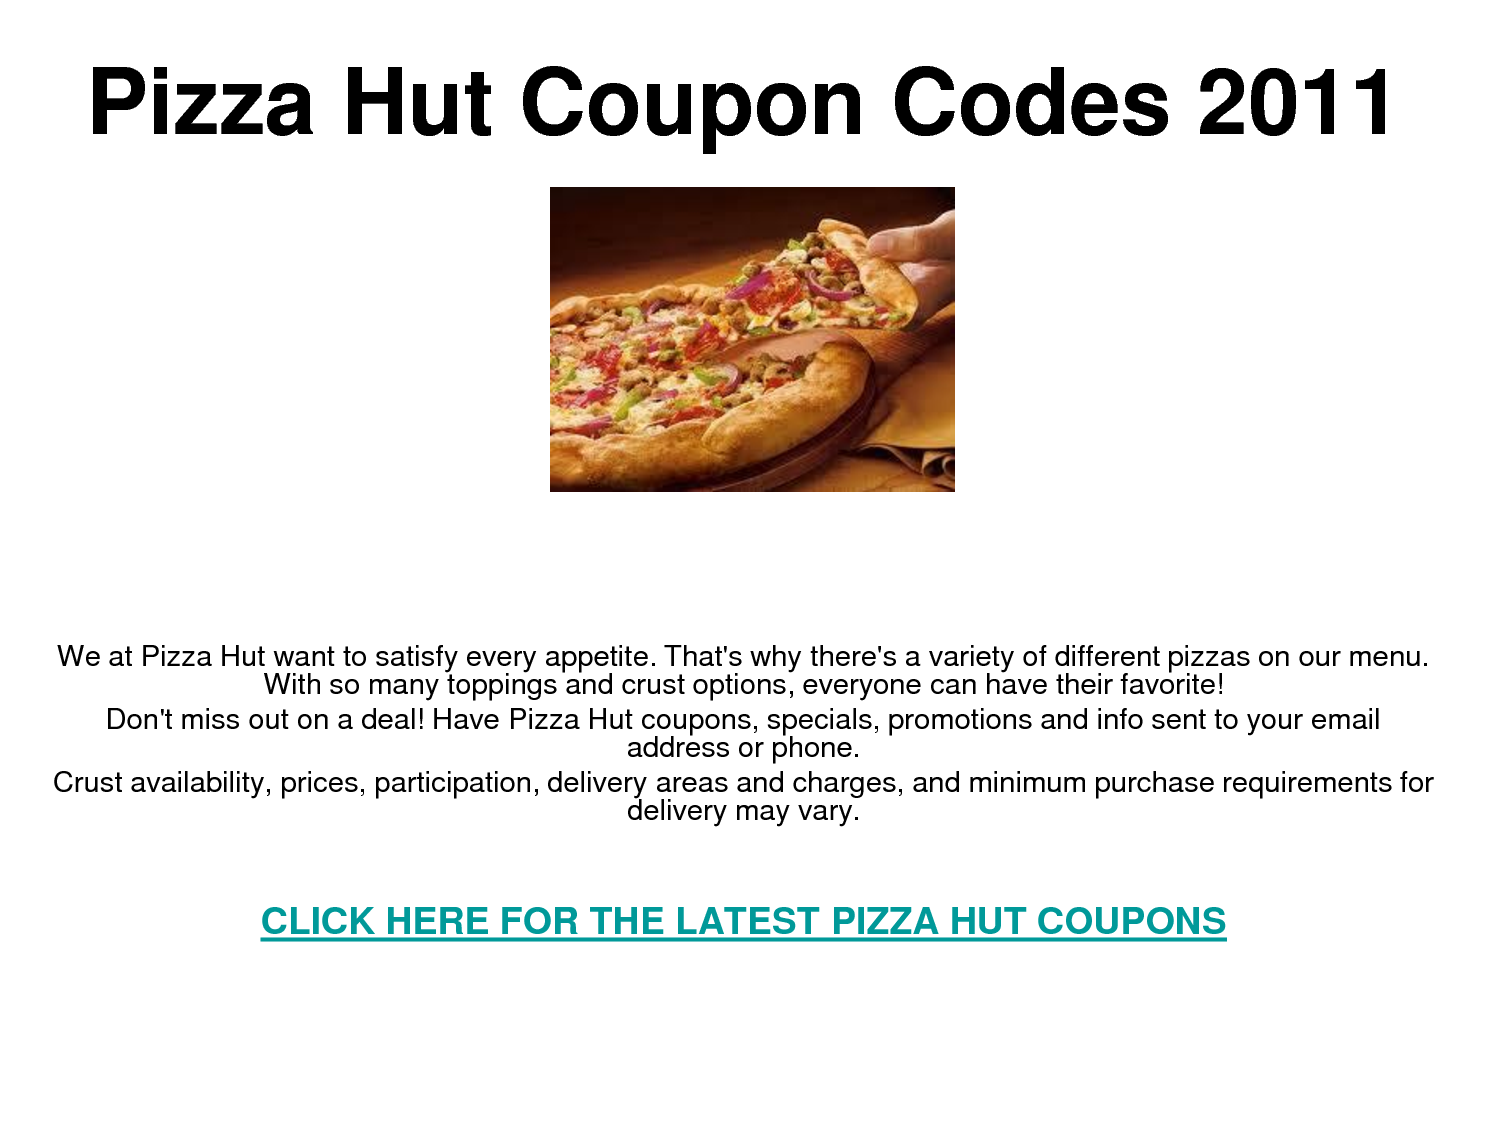 Pizza hut coupon codes